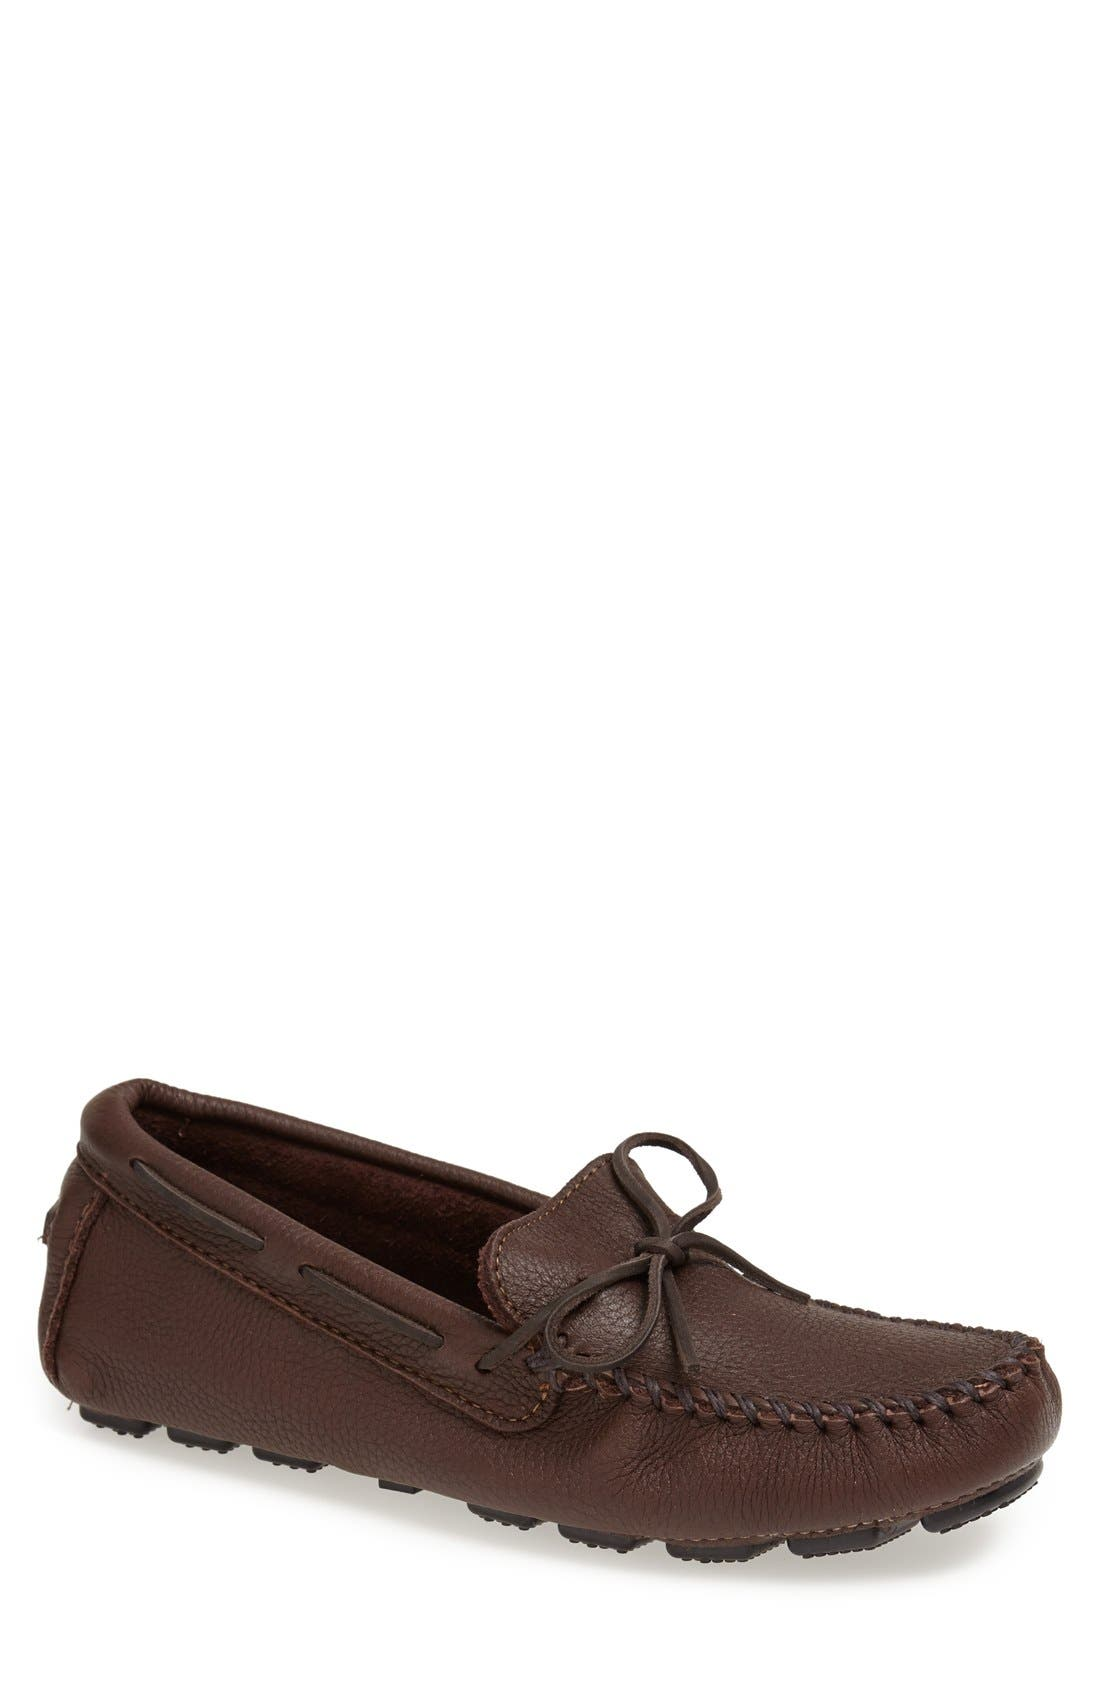 Moosehide Driving Shoe,                             Main thumbnail 1, color,                             Chocolate